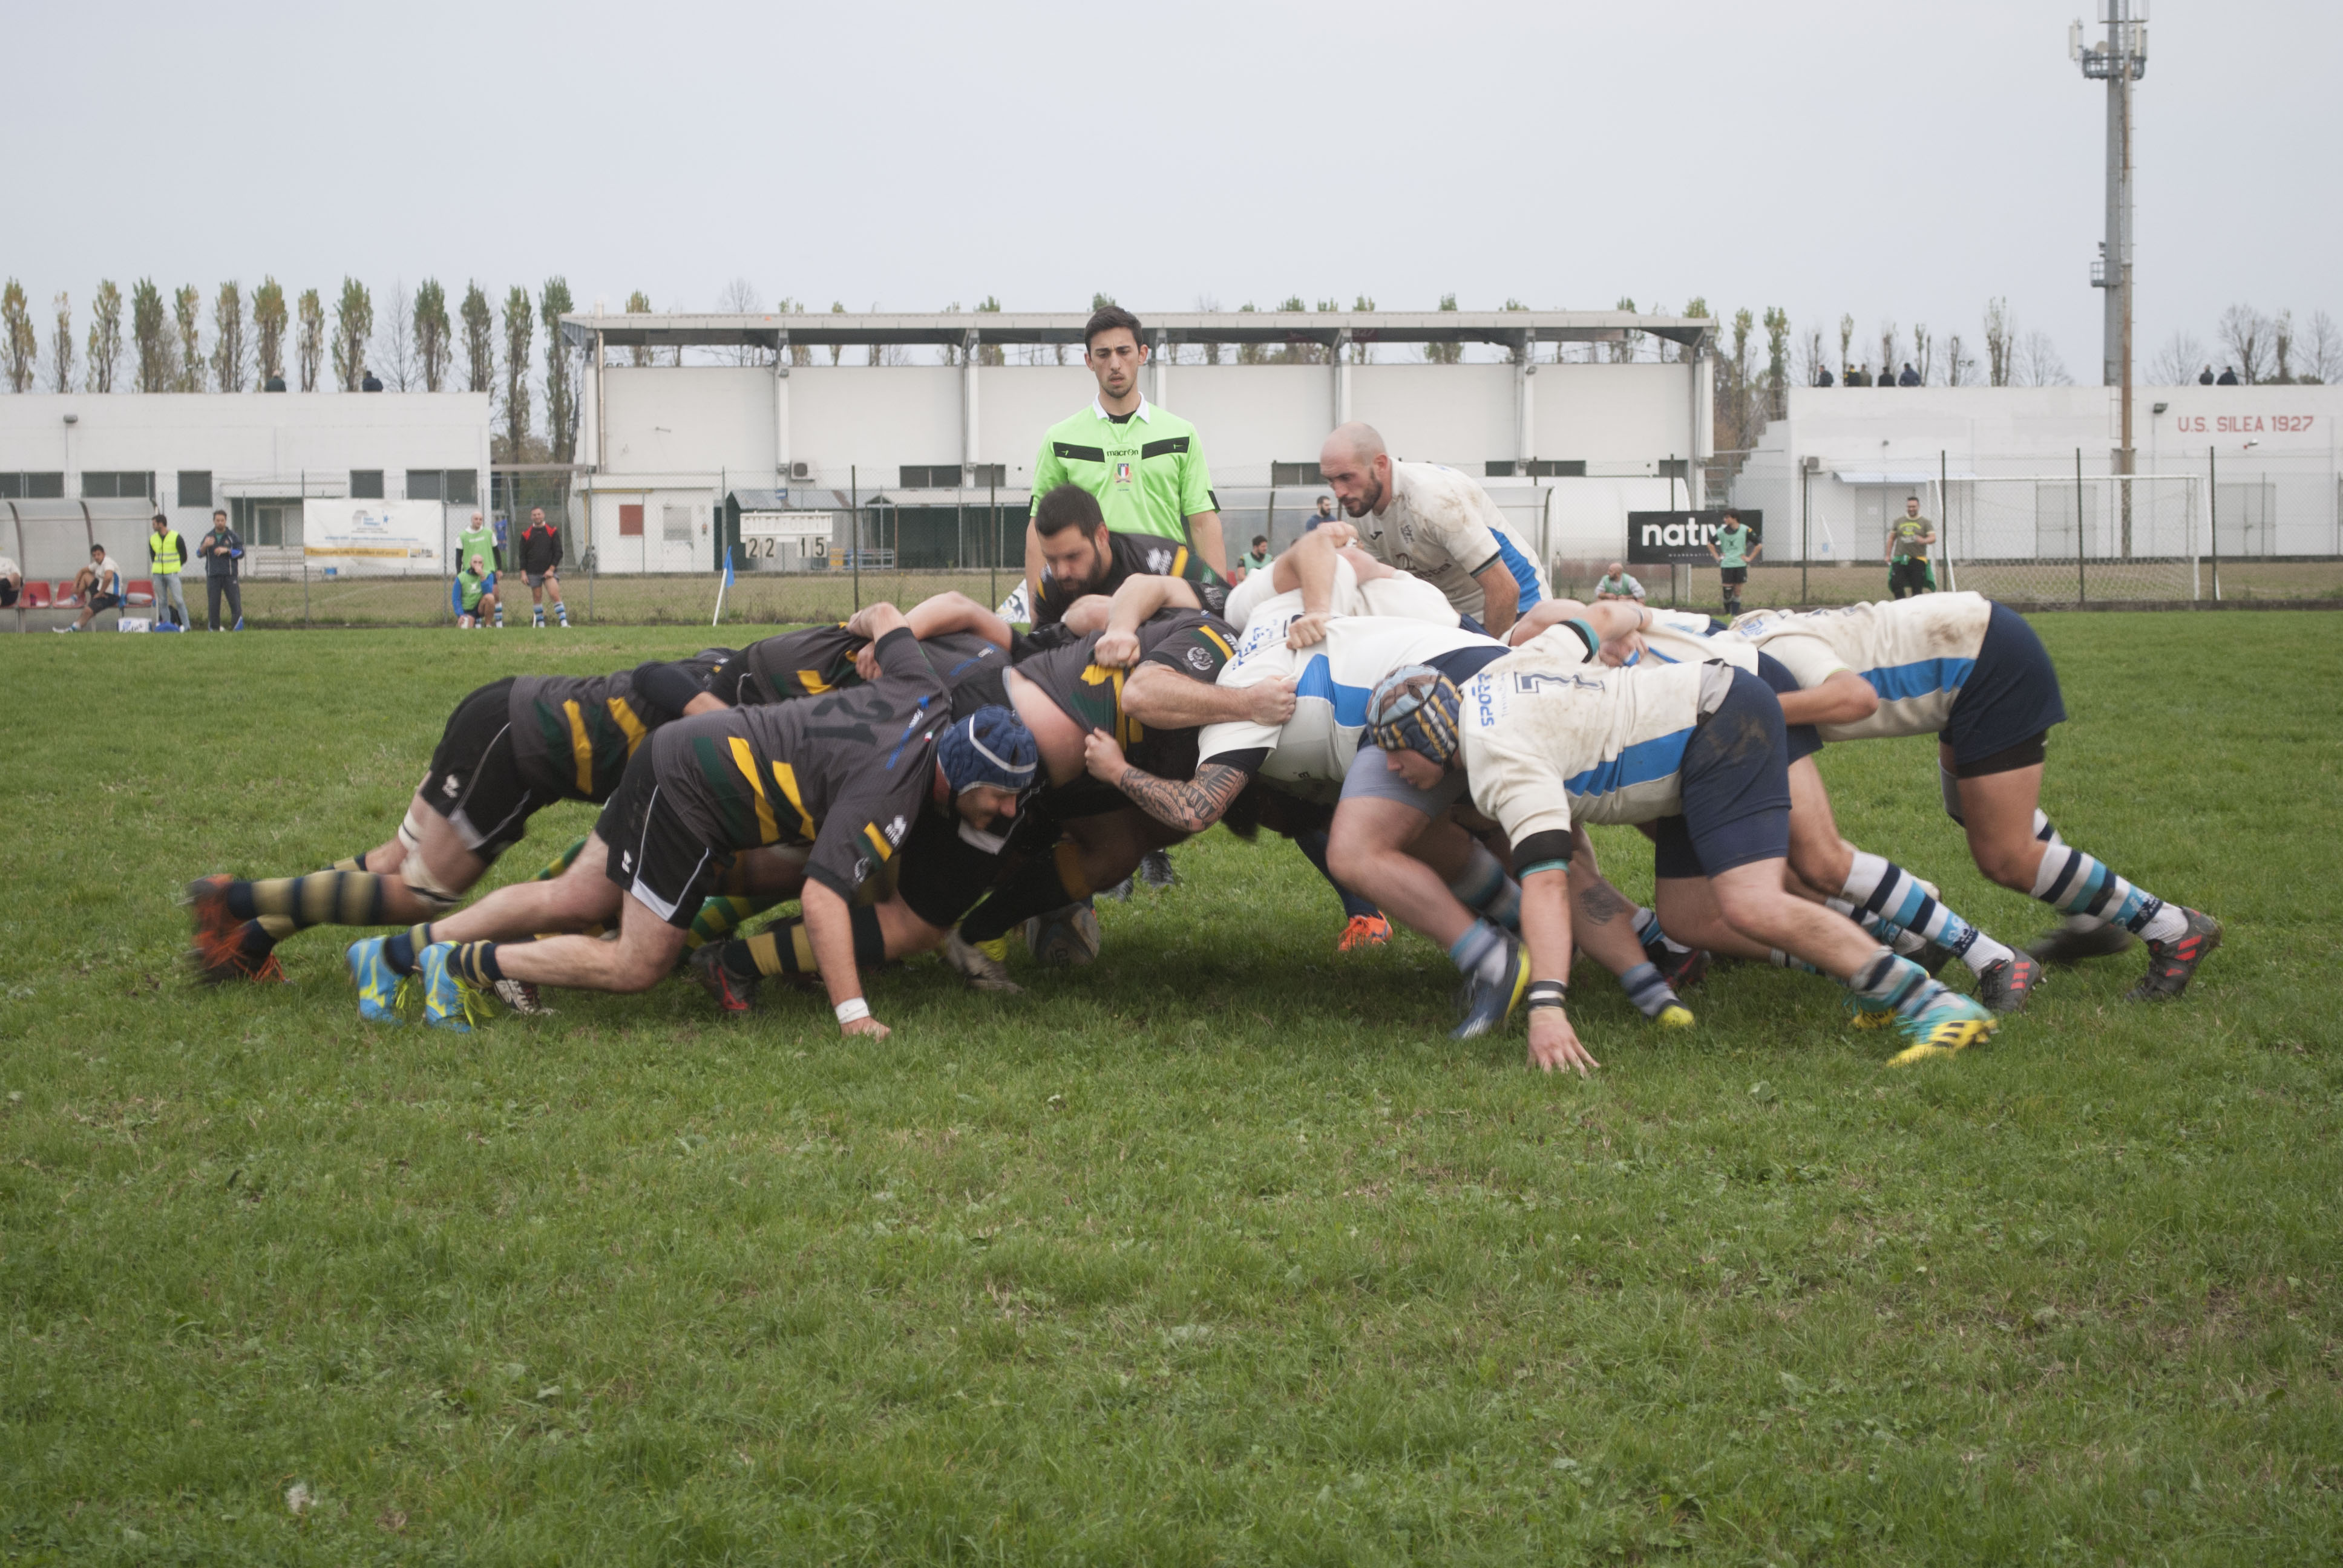 SILEA RUGBY 1981 VS BARNES RUGBY OCCASIONALS